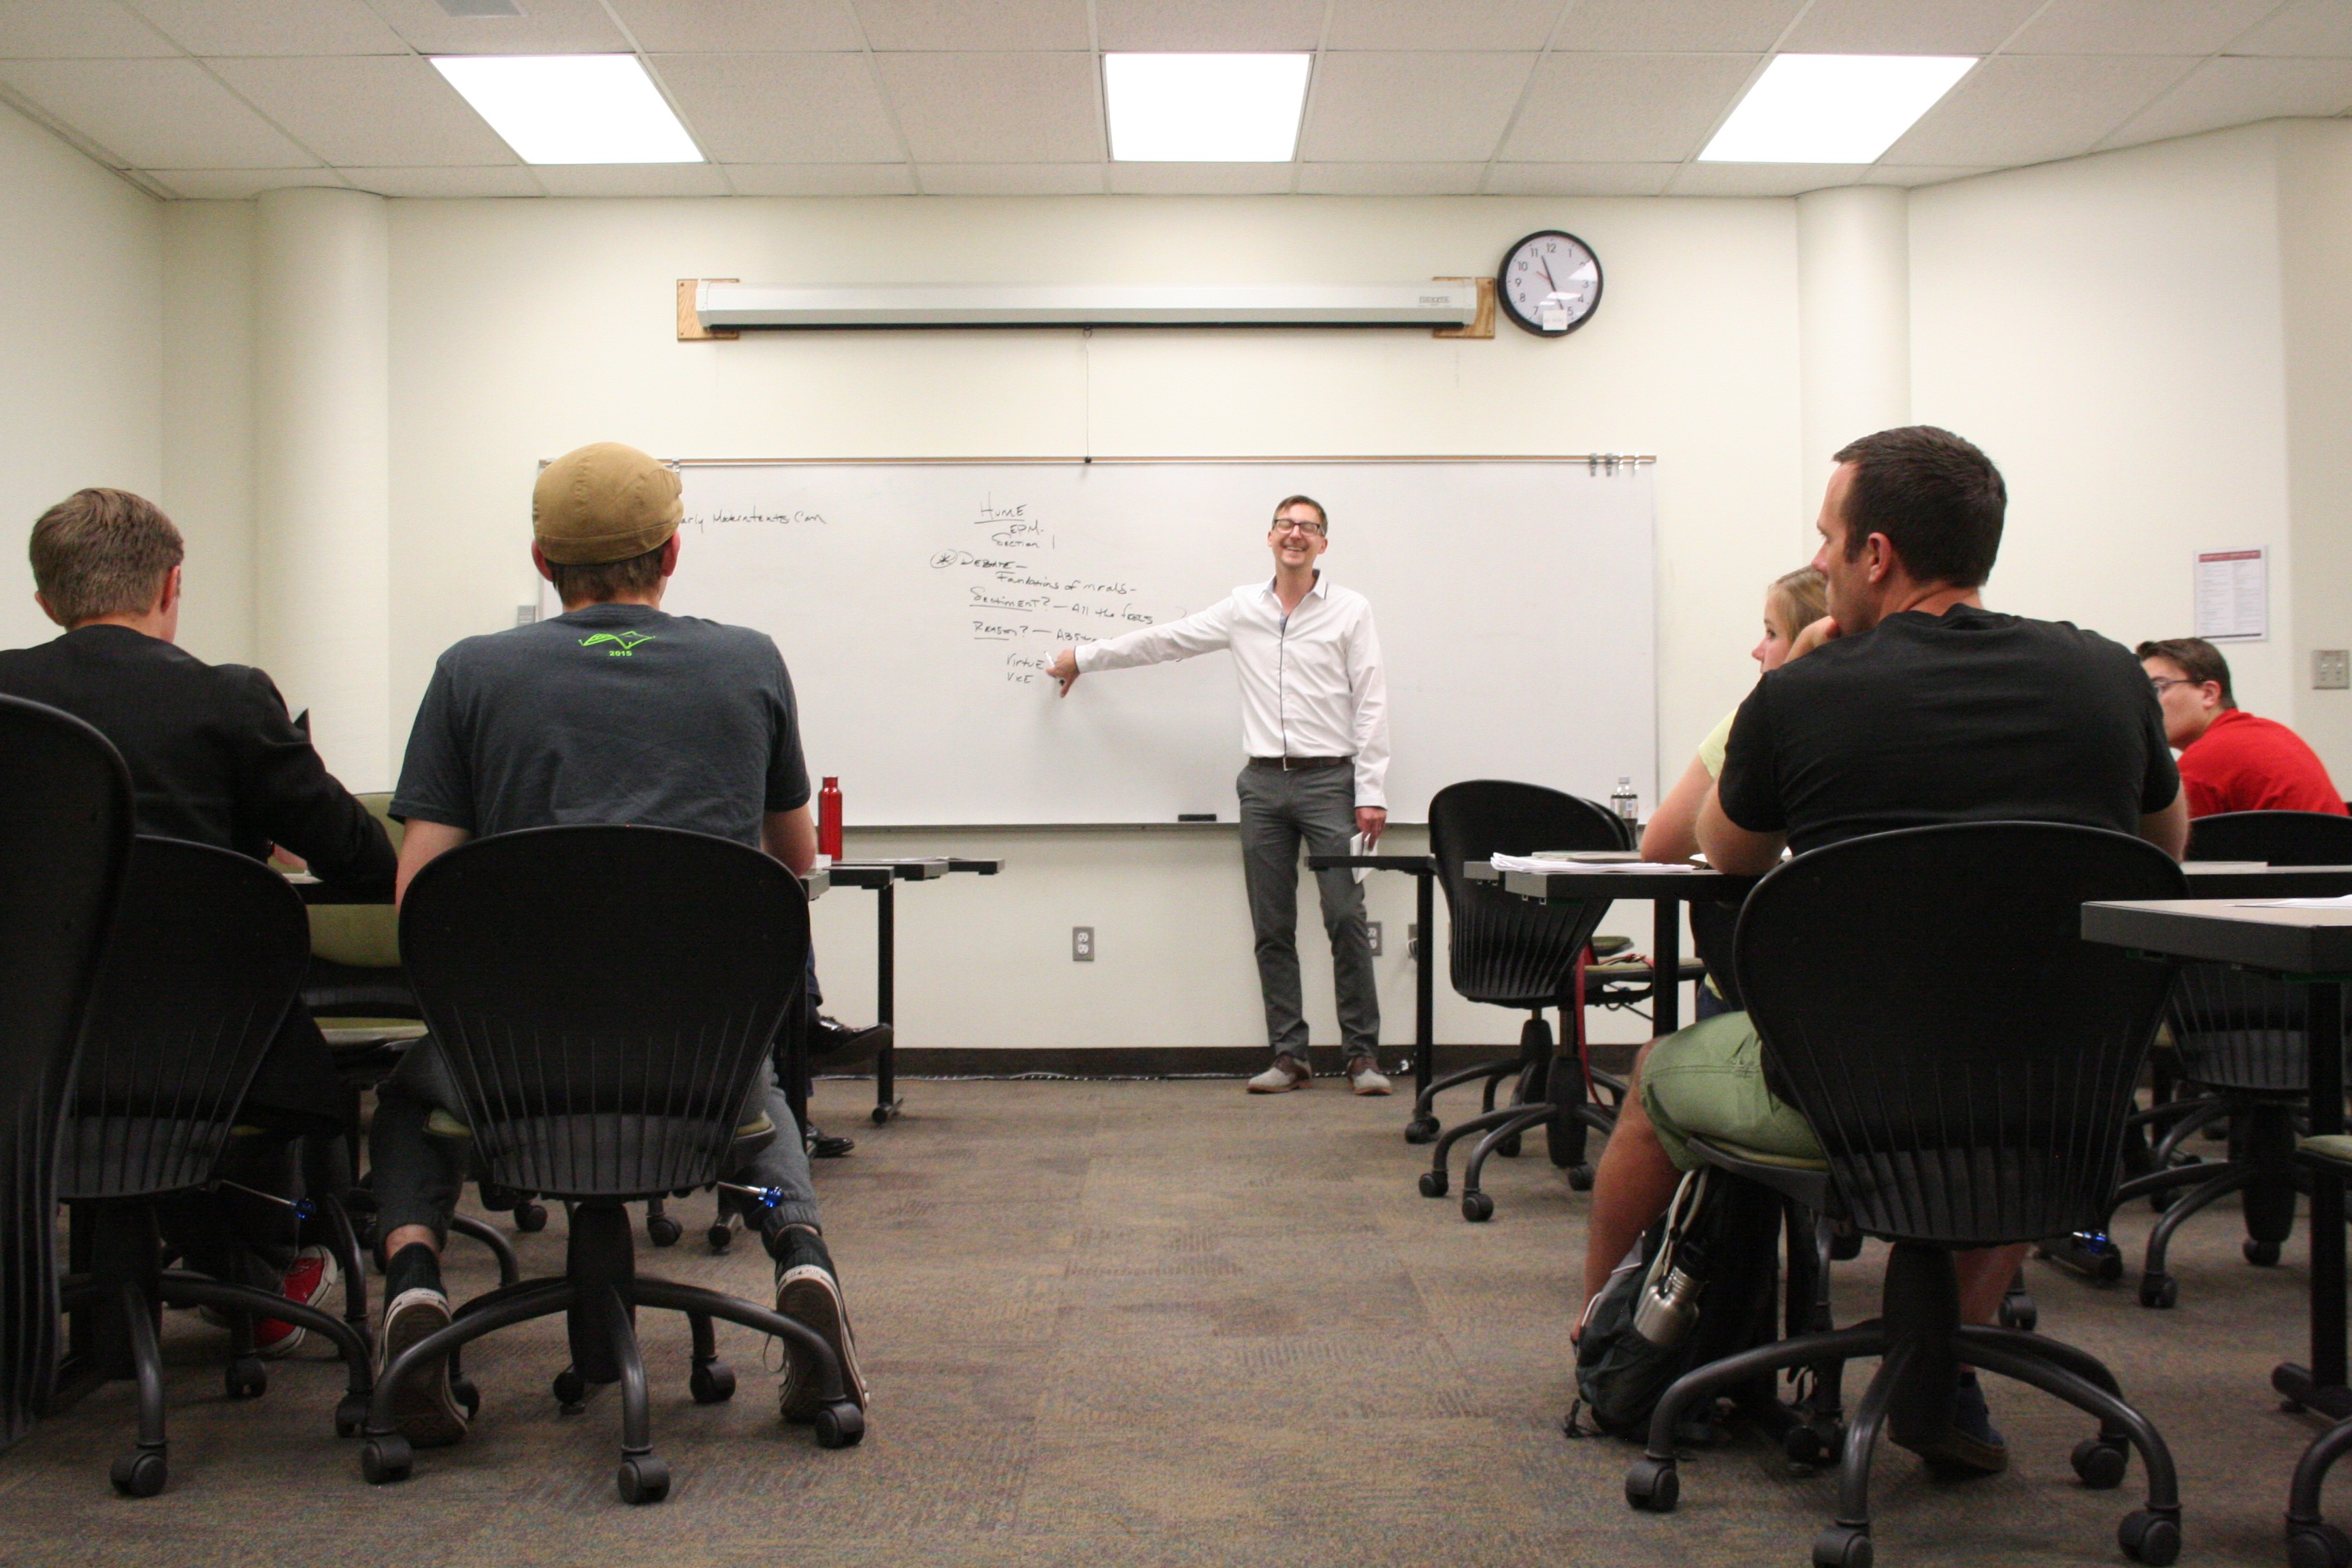 Dr. Kris Phillips engages students in a discussion about utility and benevolence, Cedar City, Utah, June 9, 2016 | Photo by Kaleigh Bronson, St. George News